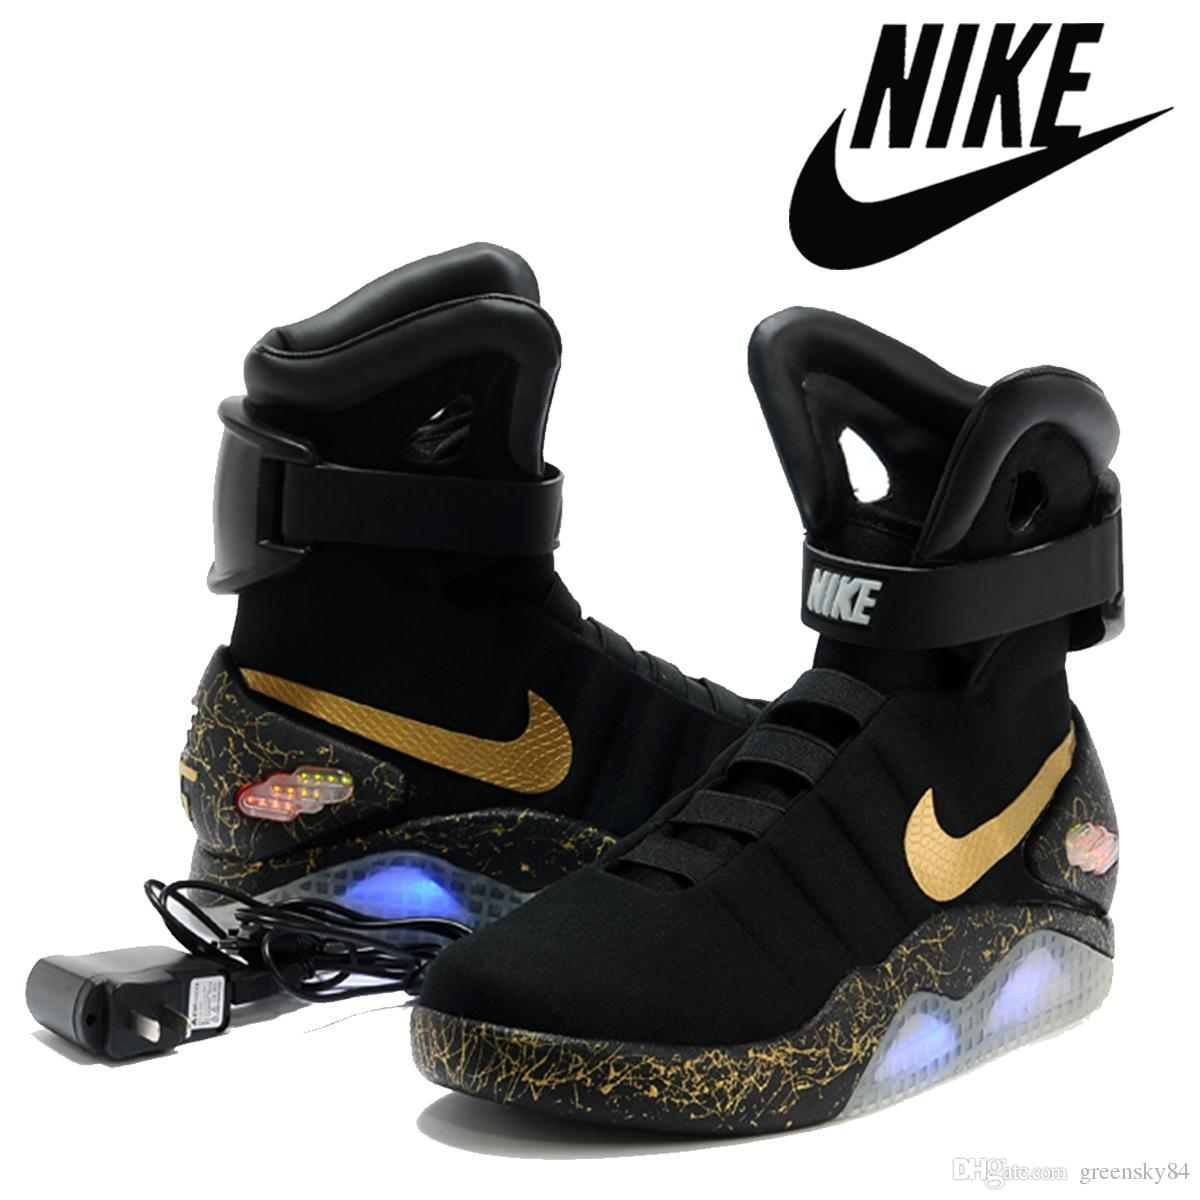 nike limited edition basketball shoes